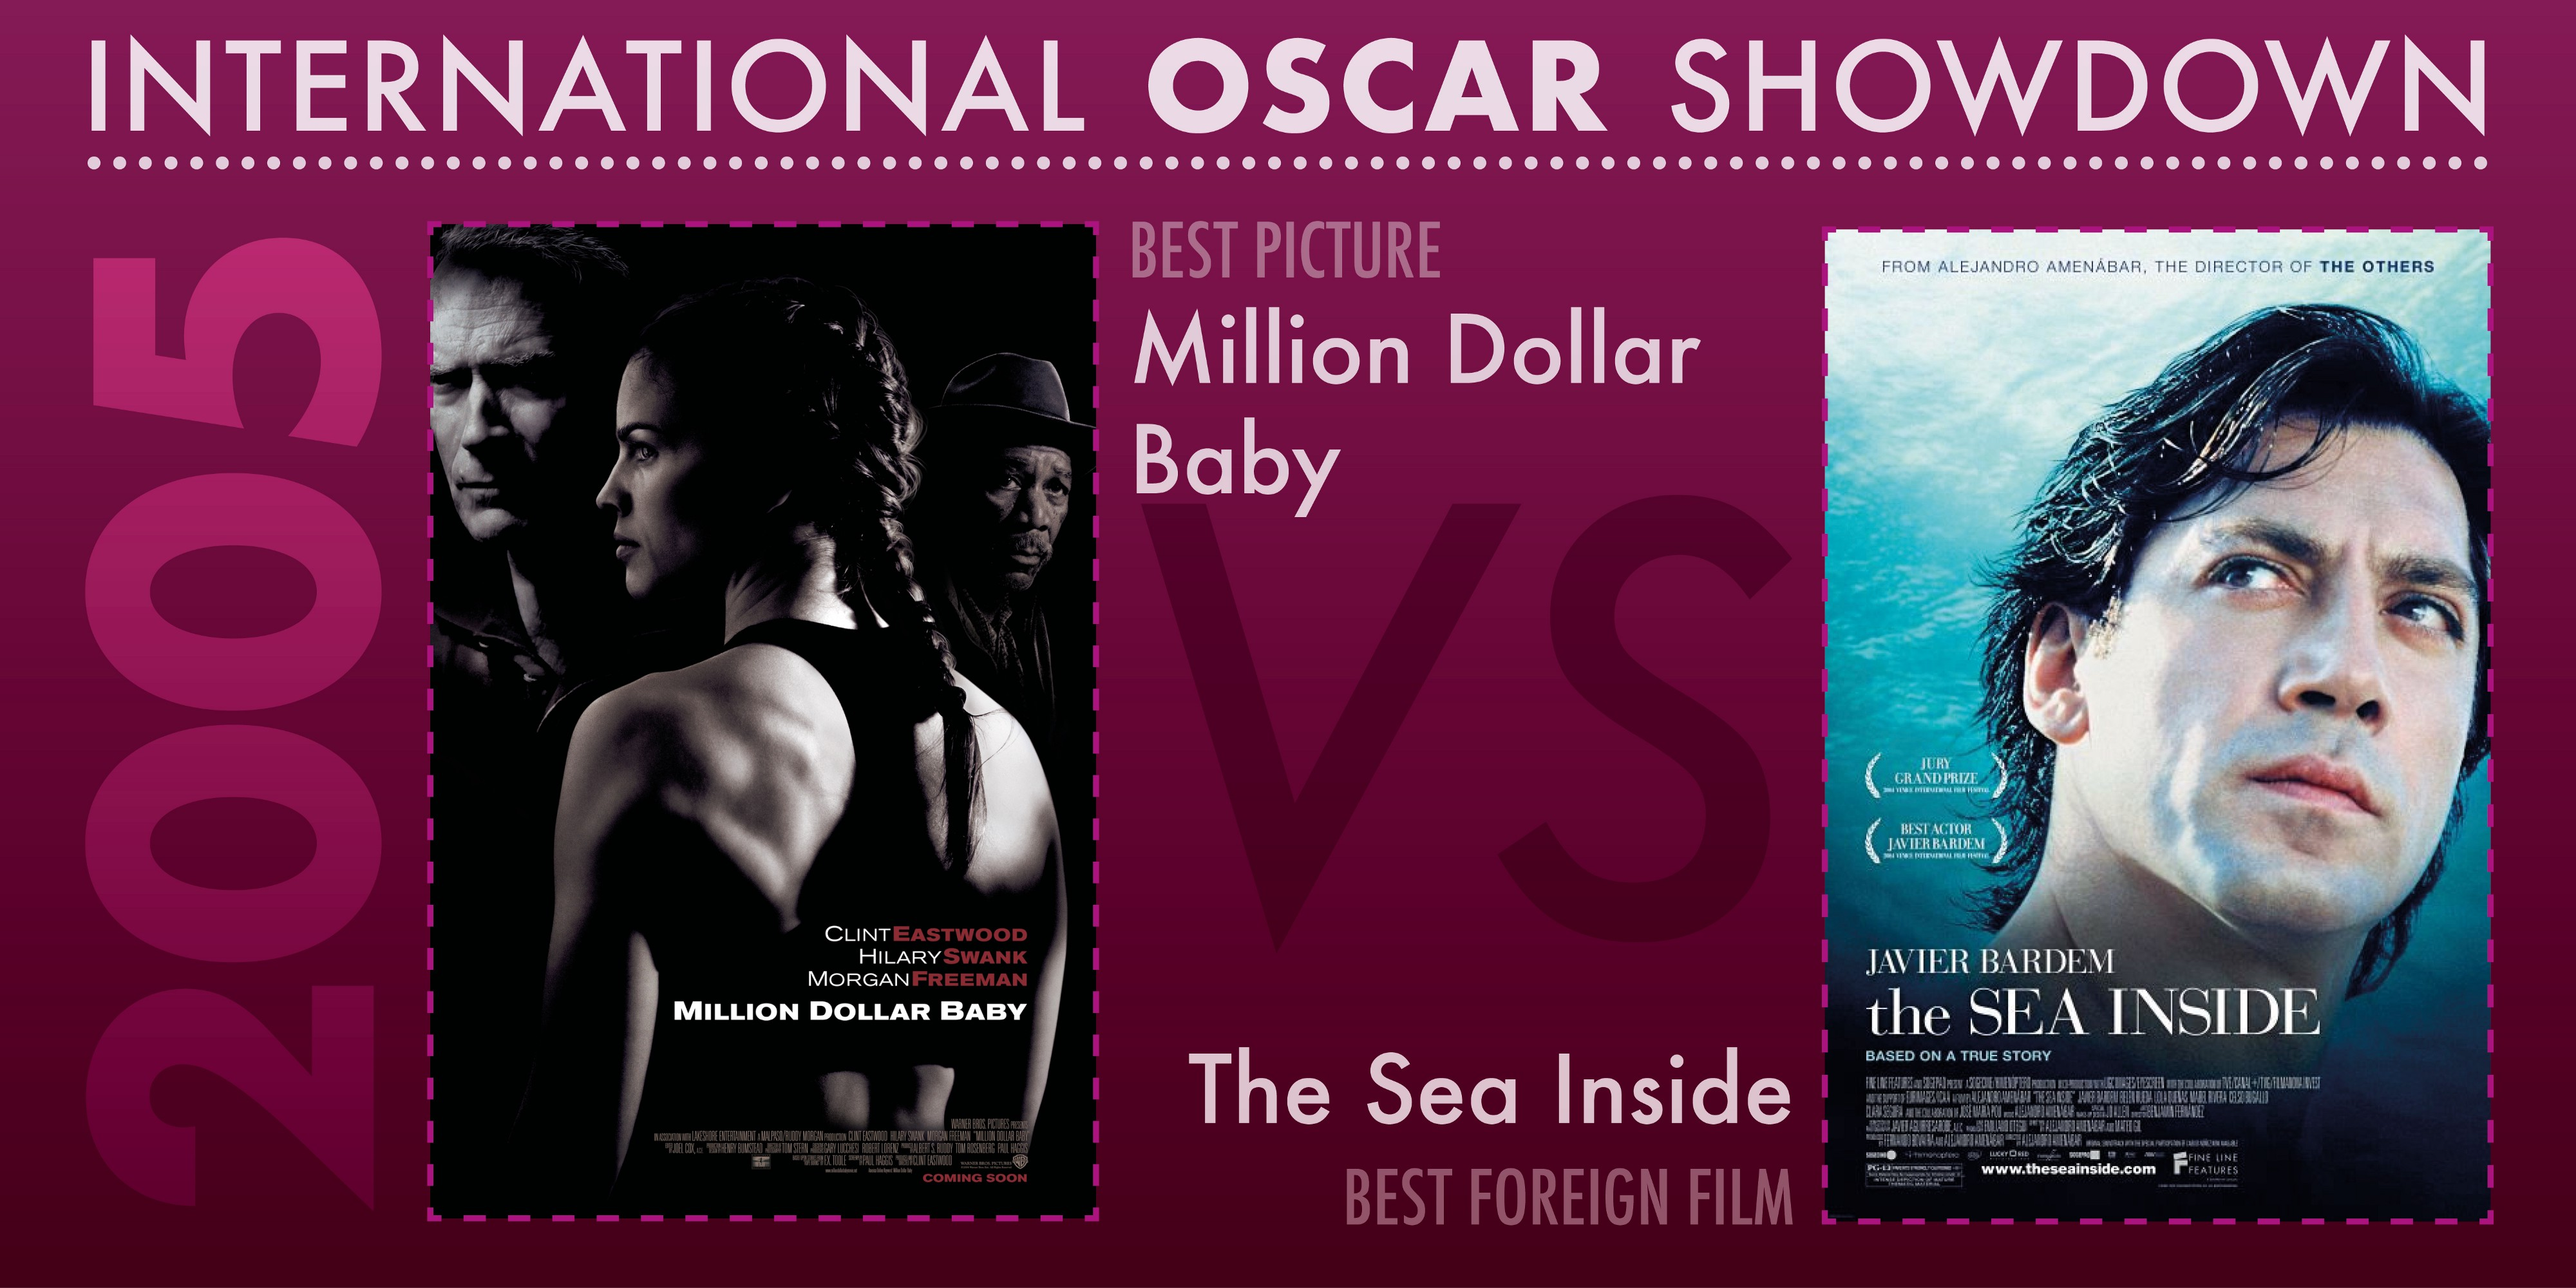 International Oscar Showdown 2005 features Million Dollar Baby versus The Sea Inside